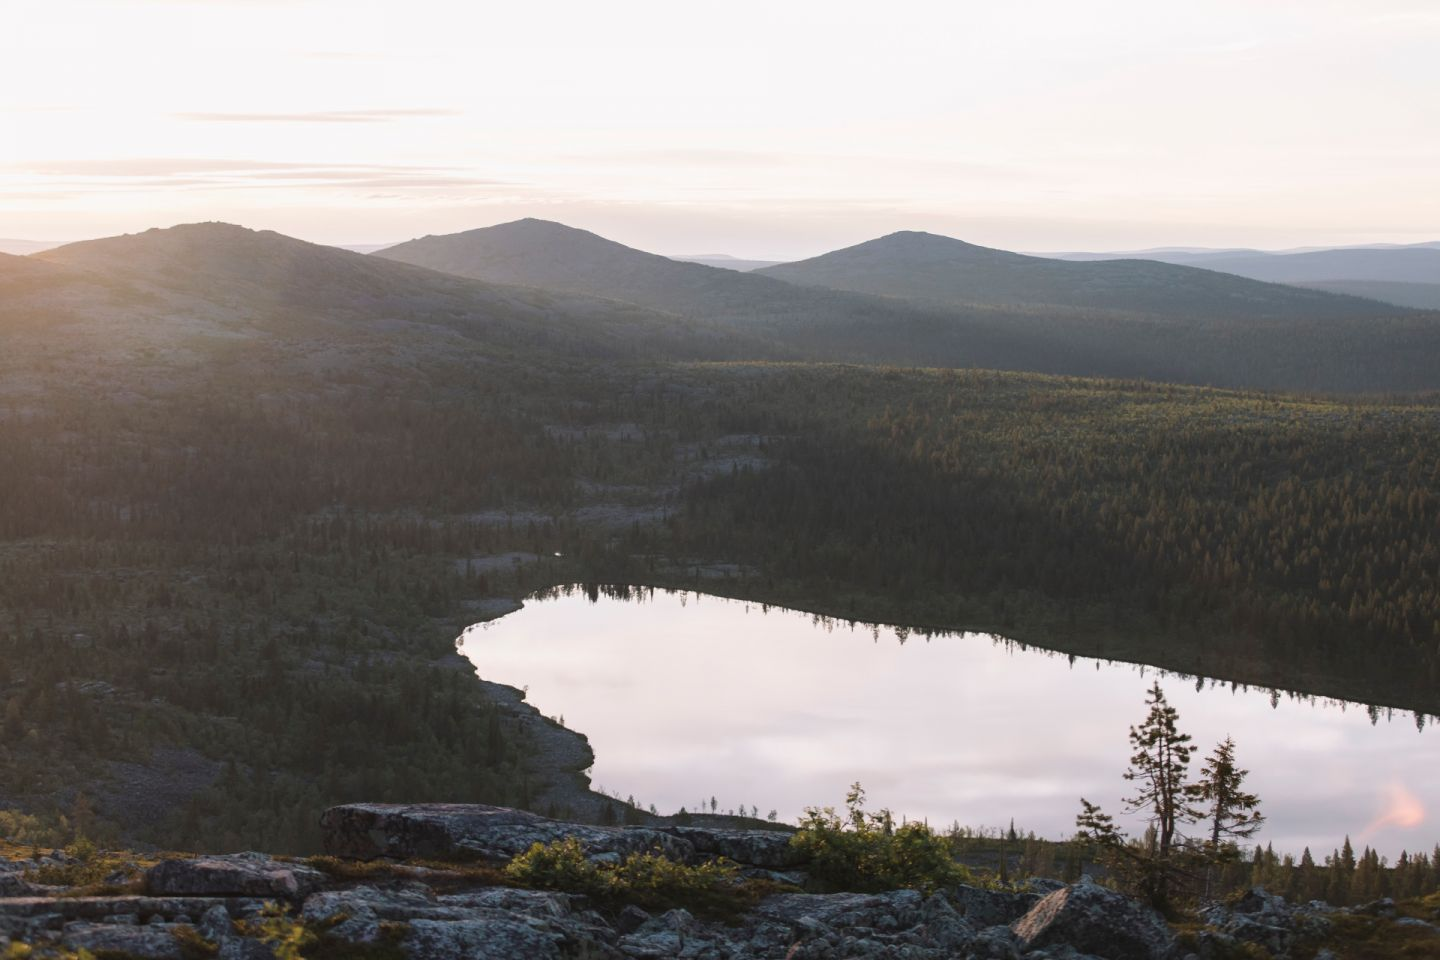 A crisp day in Lapland, Europe's last wilderness